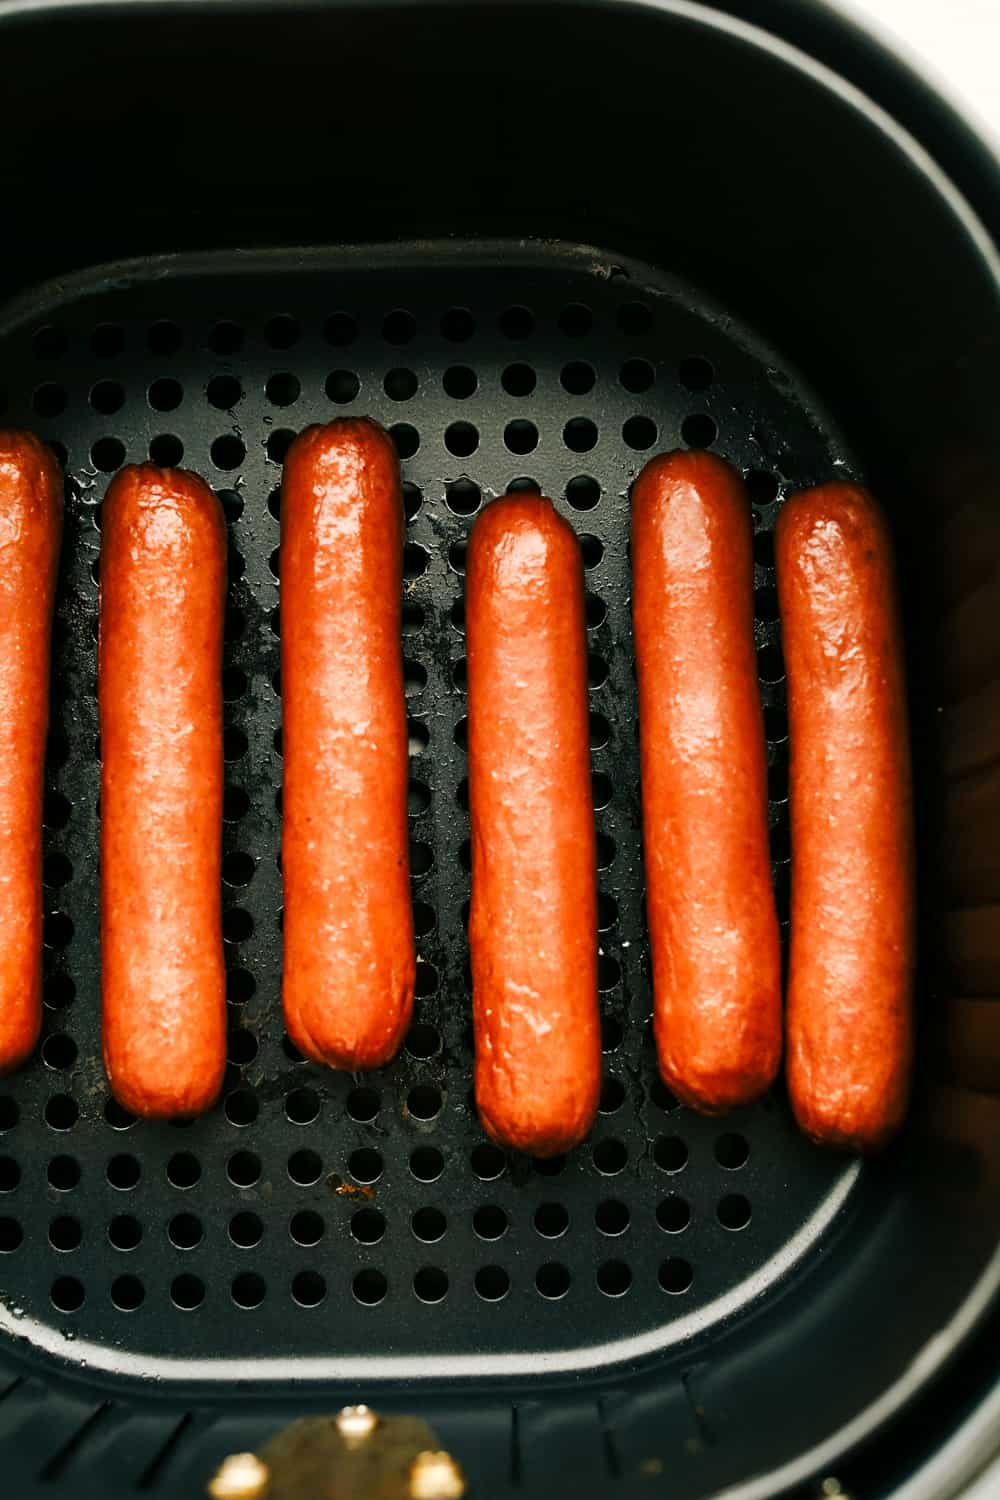 Up close picture of cooked hot dogs.